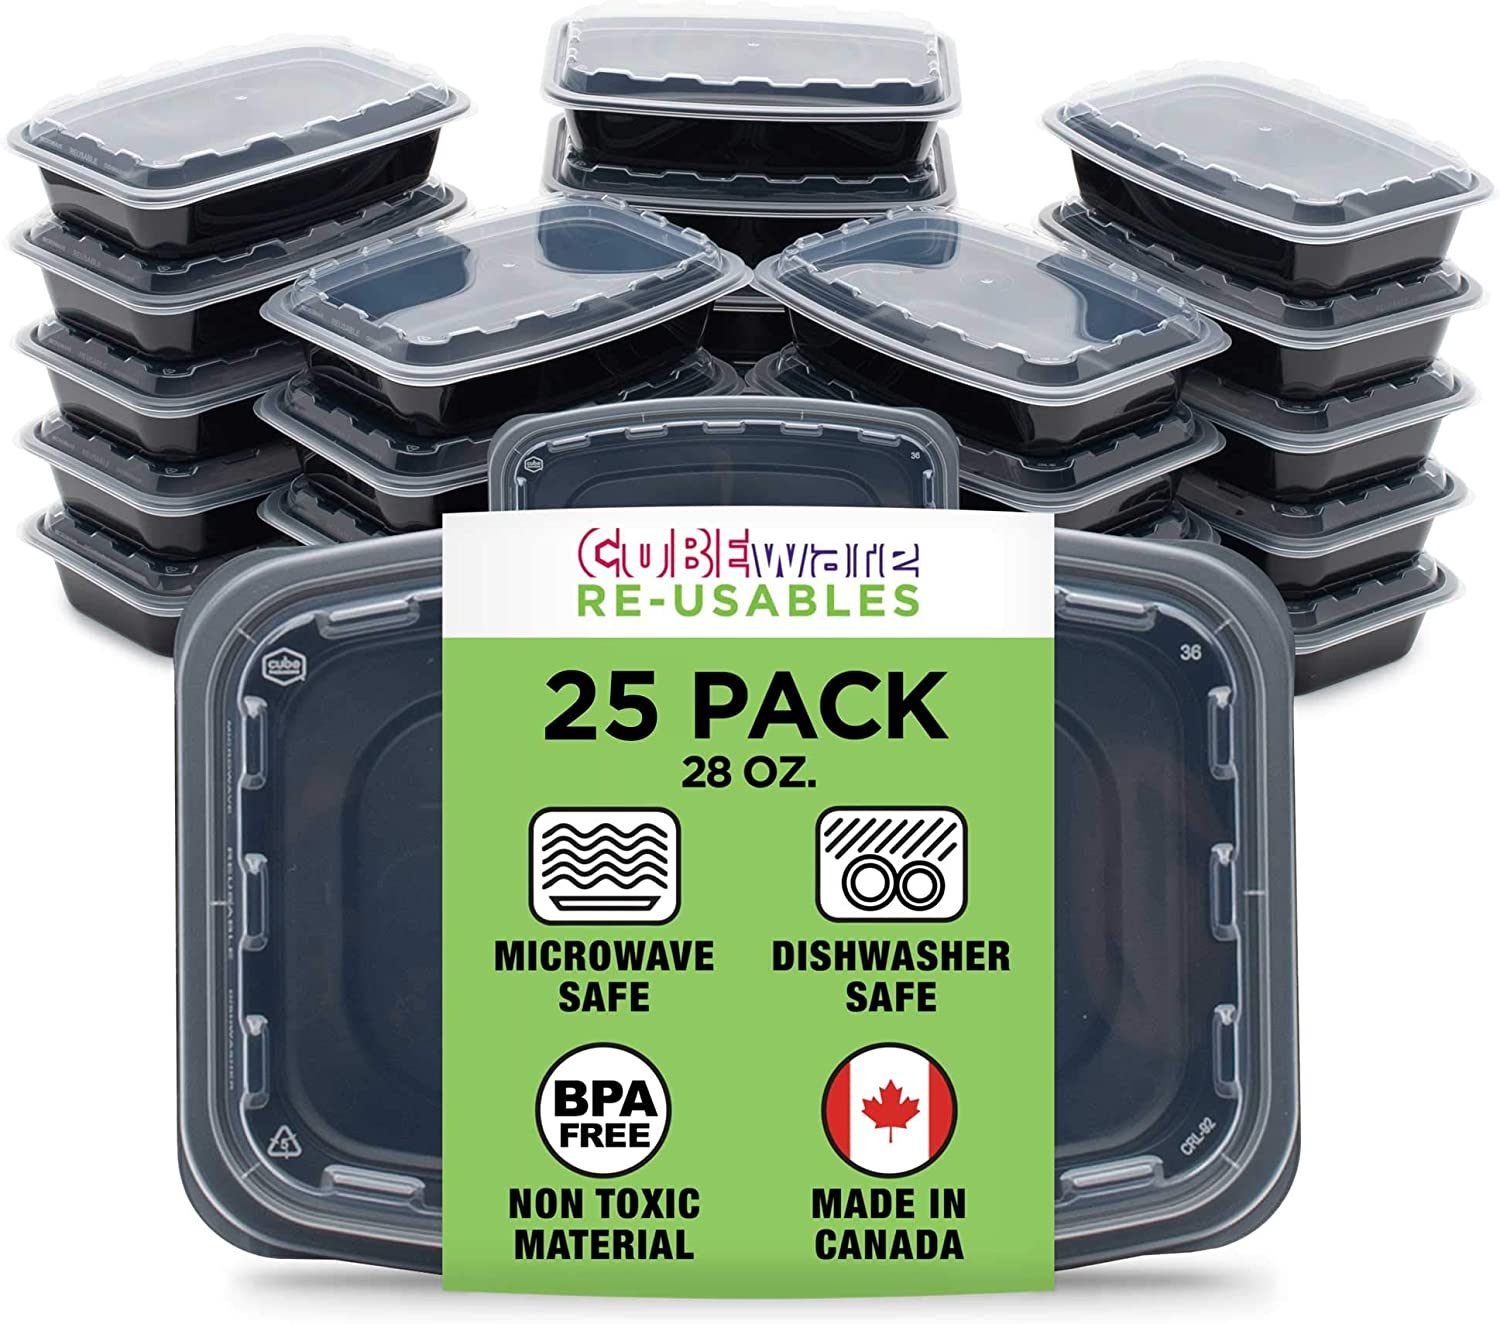 Cubeware 25-Pack Snap-Seal, Microwavable, Dishwasher and Freezer Safe, Reusable Food Storage Bento Box, Meal Prep Containers (28 oz, BPA Free)